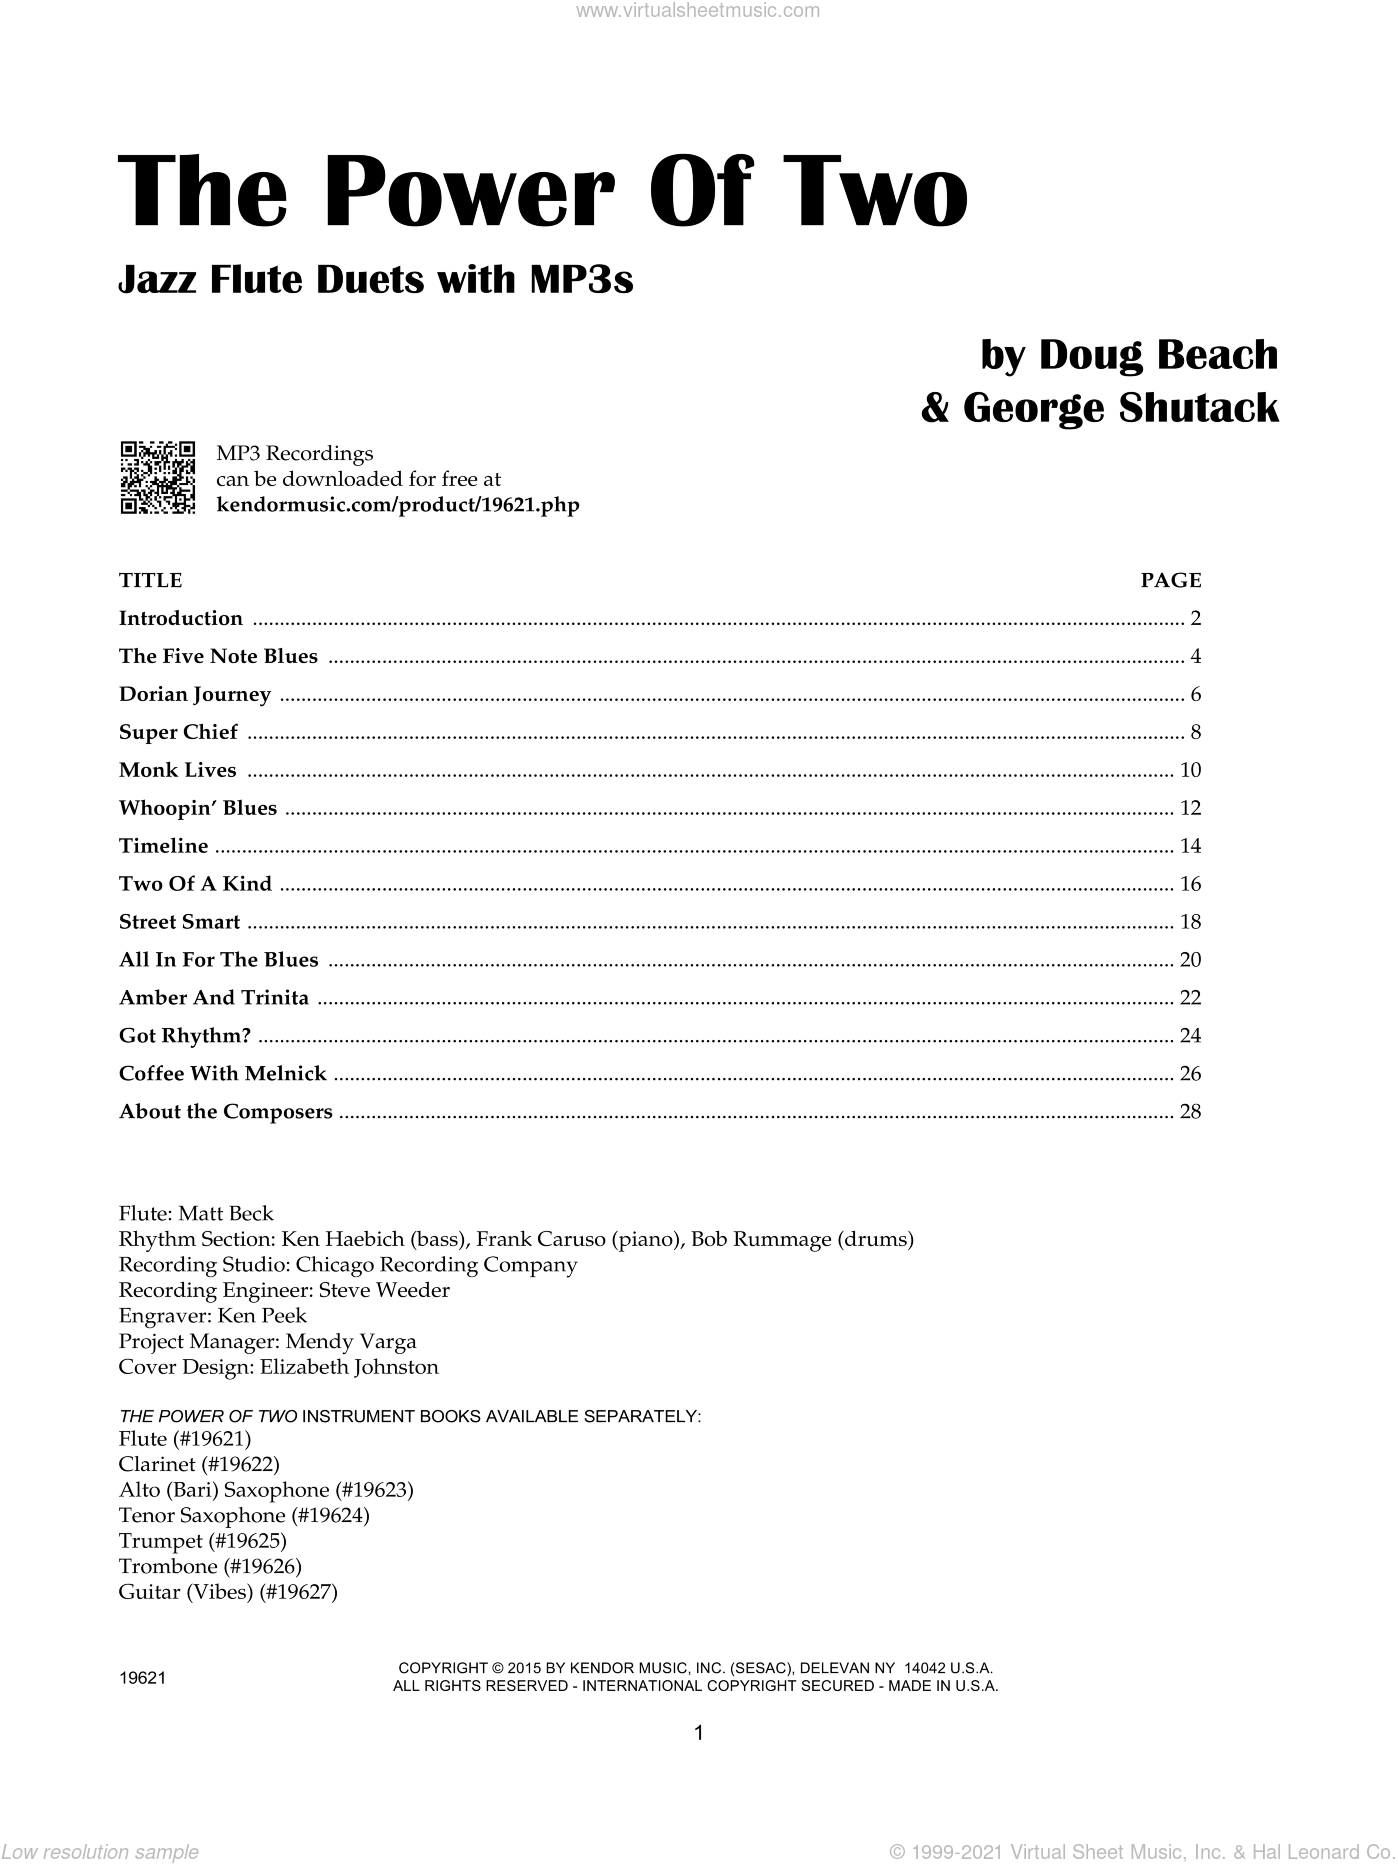 The Power Of Two - Flute sheet music for two flutes by Doug Beach and George Shutack. Score Image Preview.